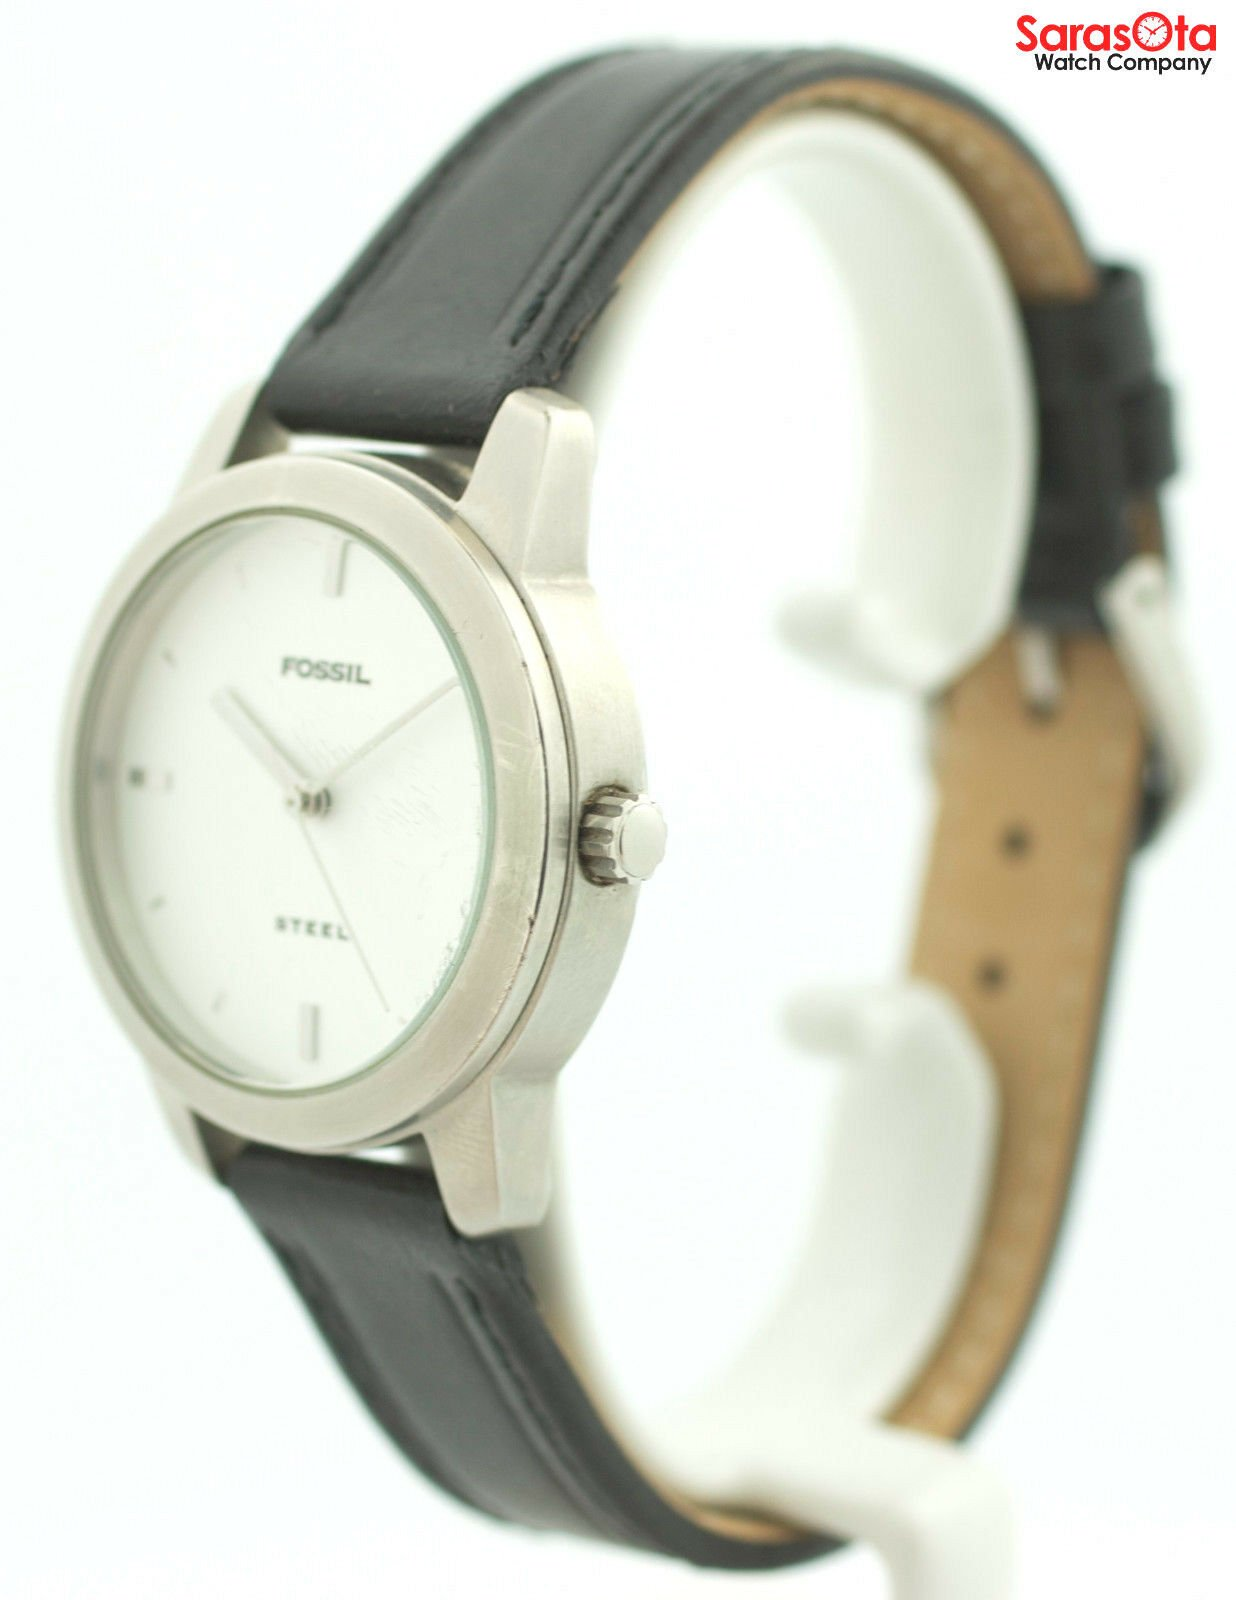 Fossil FS 2661 White Dial Stainless Steel Black Leather Quartz Womens Watch 121773030002 3